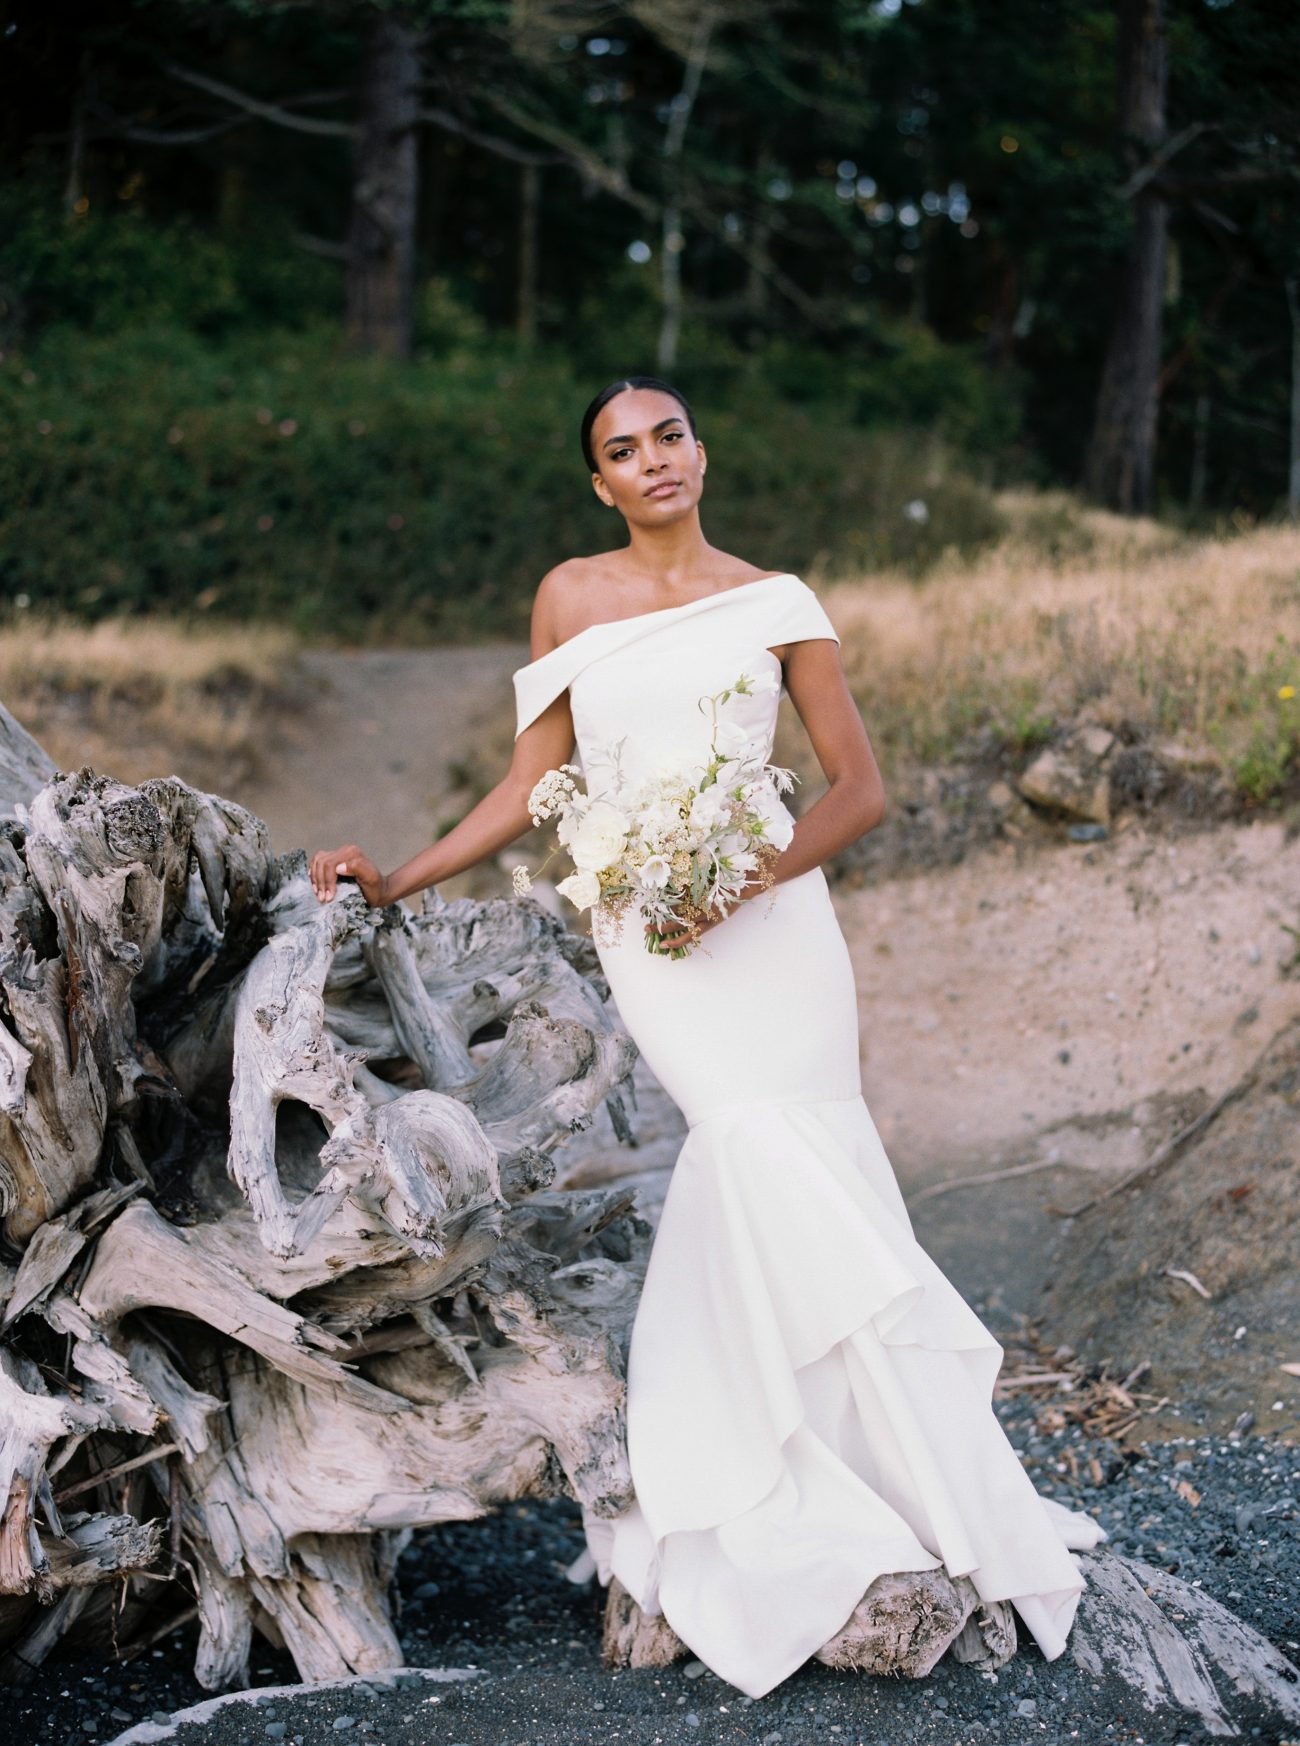 Sarah Seven's Prosecco Gown: Timeless Elegance For The Modern Bride